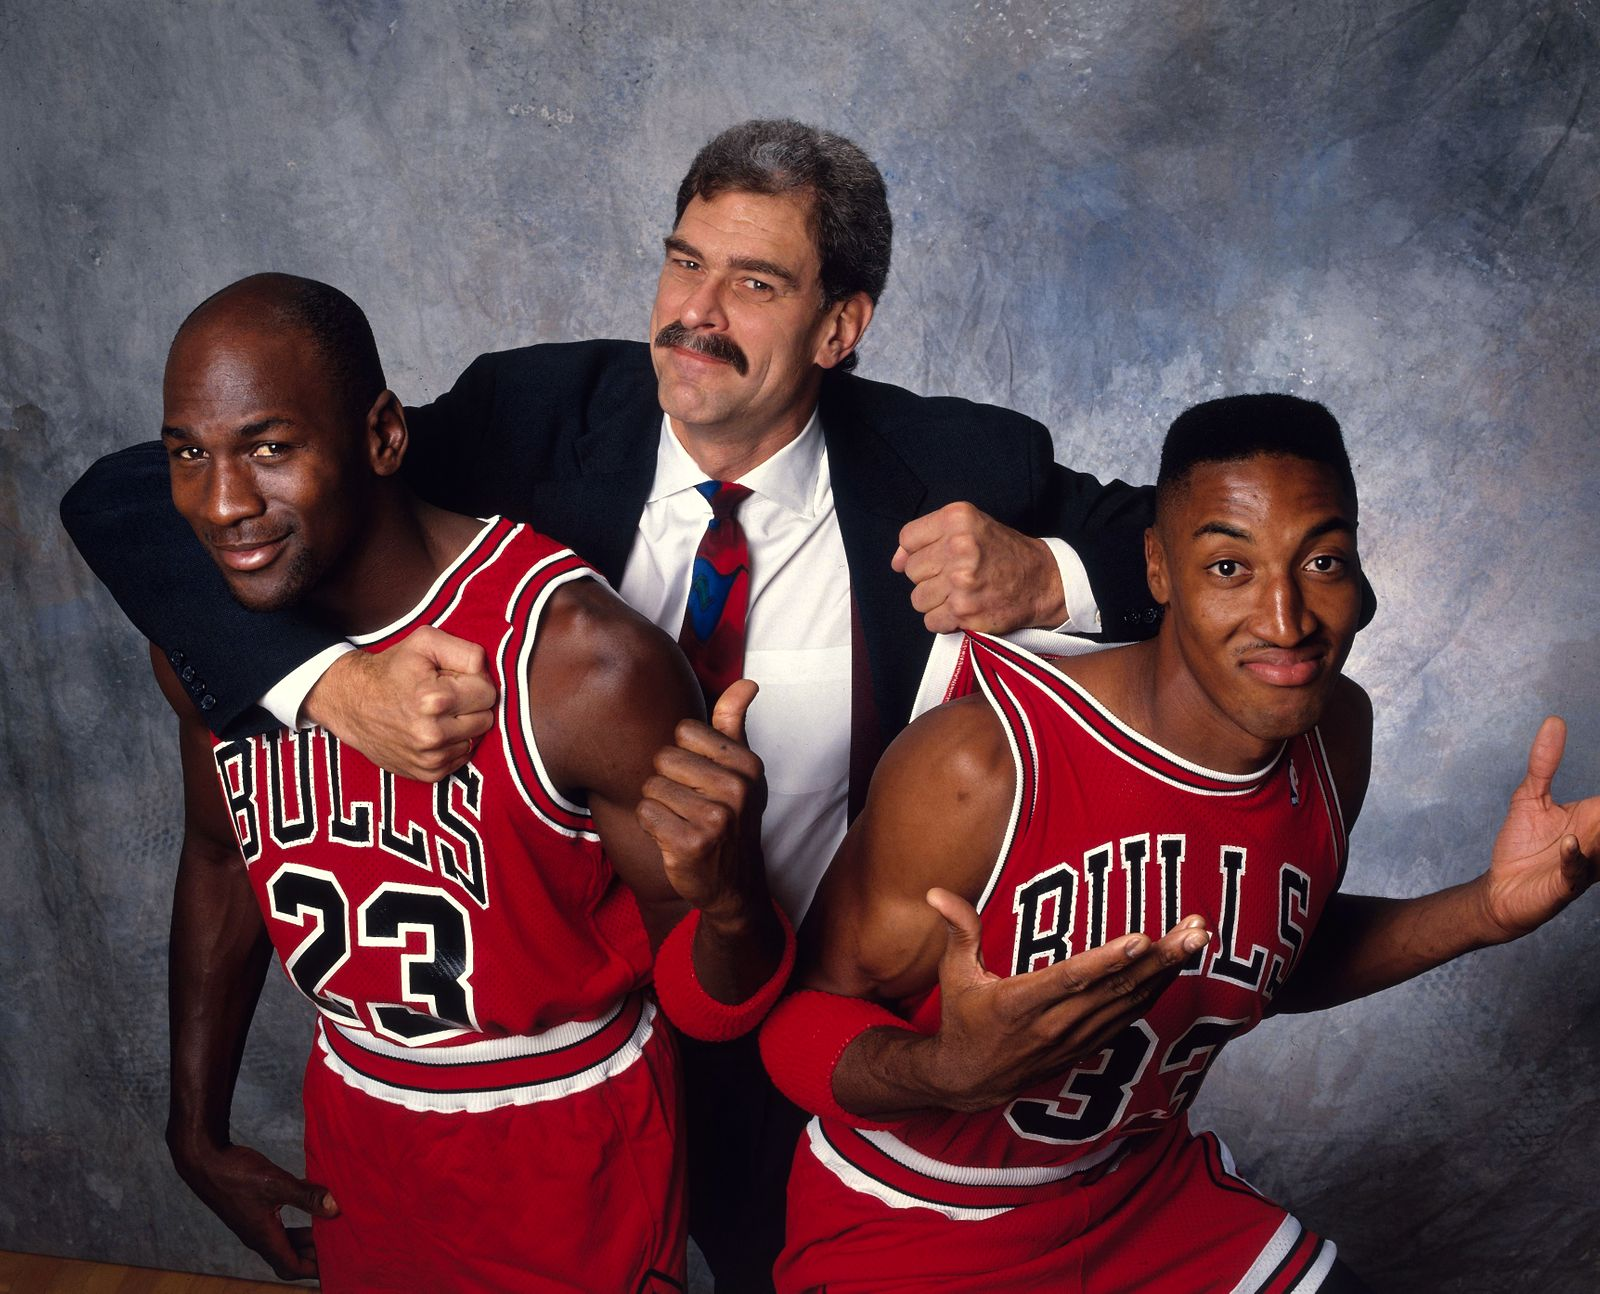 Chicago Bulls Coach Phil Jackson, Michael Jordan, and Scottie Pippen, 1991-92 NBA Basketball Preview Issue